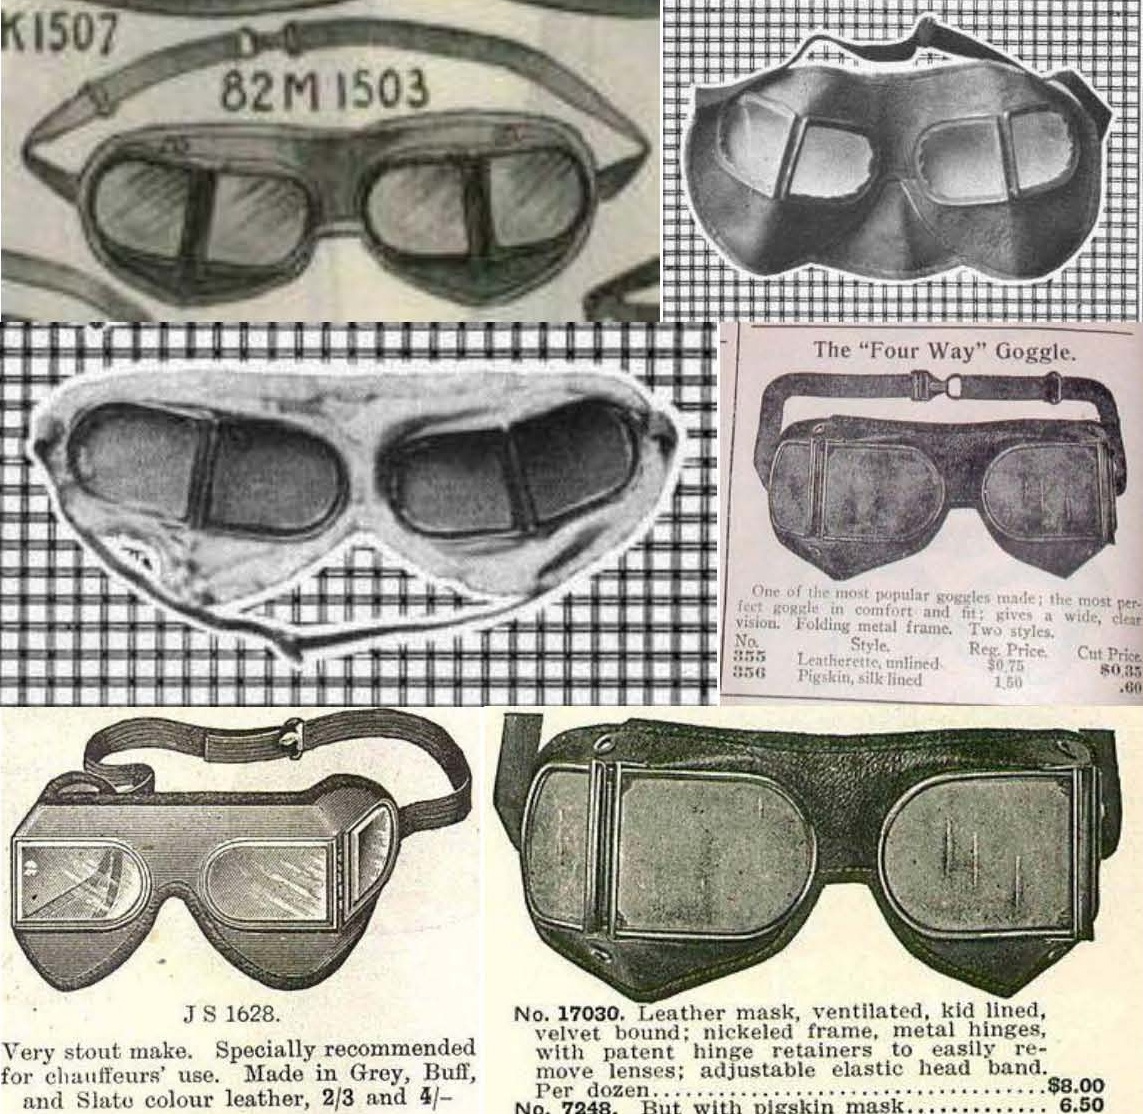 Figure 6. Top left, New York's Macy's catalogue, 1904; top right and middle left, Sak's catalogue, New York, 1905. Middle right, 1910, National Auto Supply Company, New York; bottom left, 1913 British advertisement (William Whitley Ltd), bottom right, 1915 U.S. (B.A.&CO. Chicago). Note, that both the middle and bottom right advertisements, although 5 years apart have the same image, they show a patented metal hinge, others relied on cloth hinges.